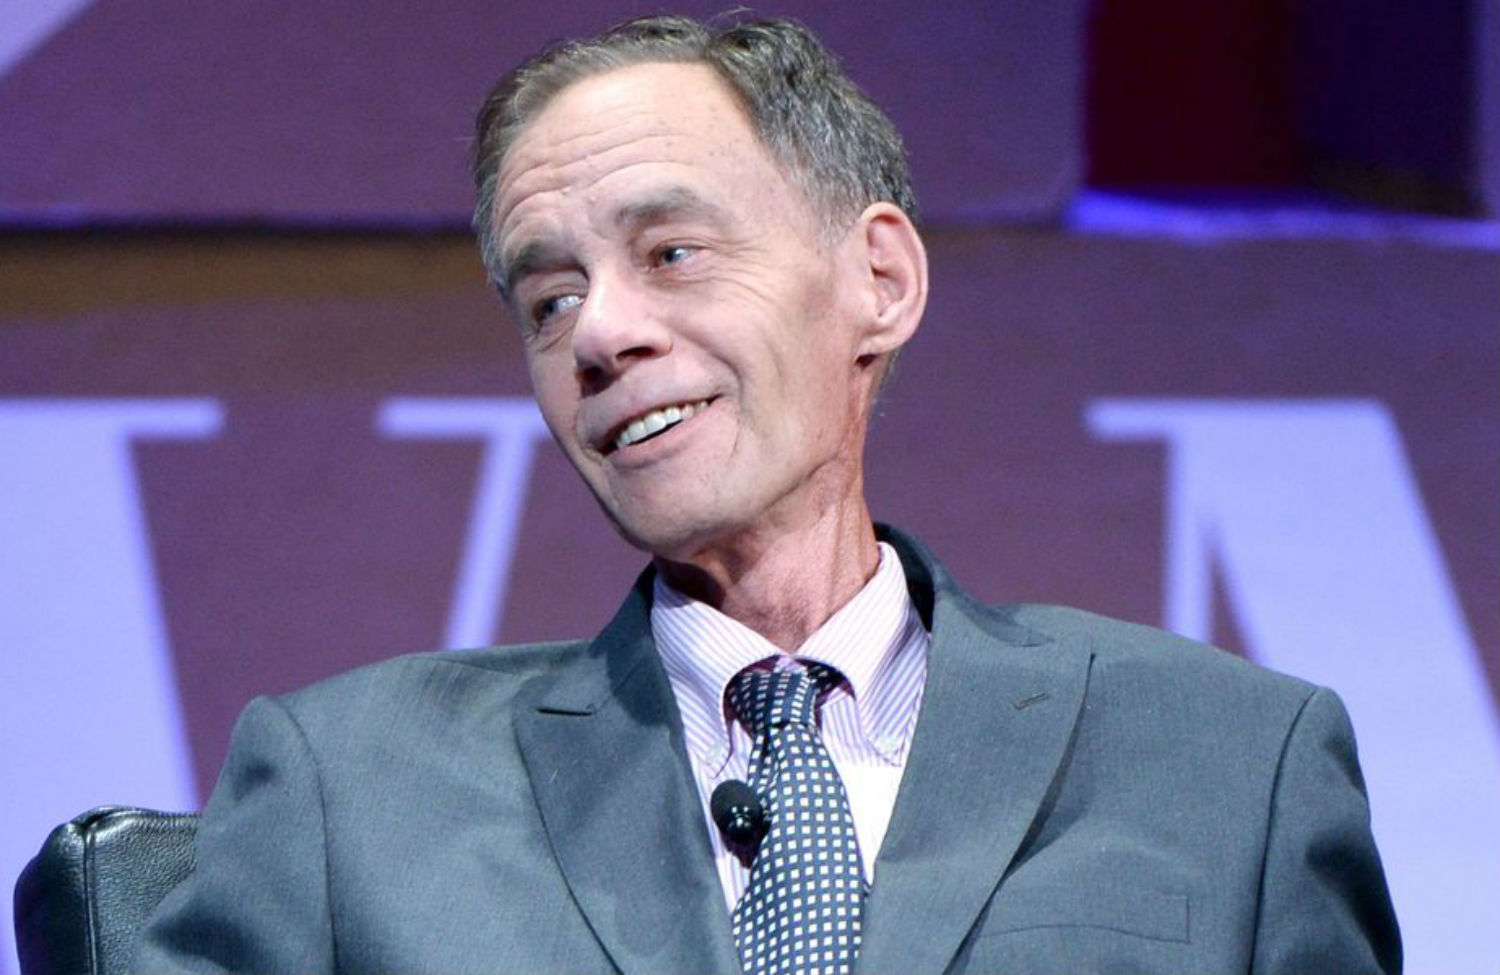 David-Carr-on-Memory-Celebrity-Media-and-Confusion